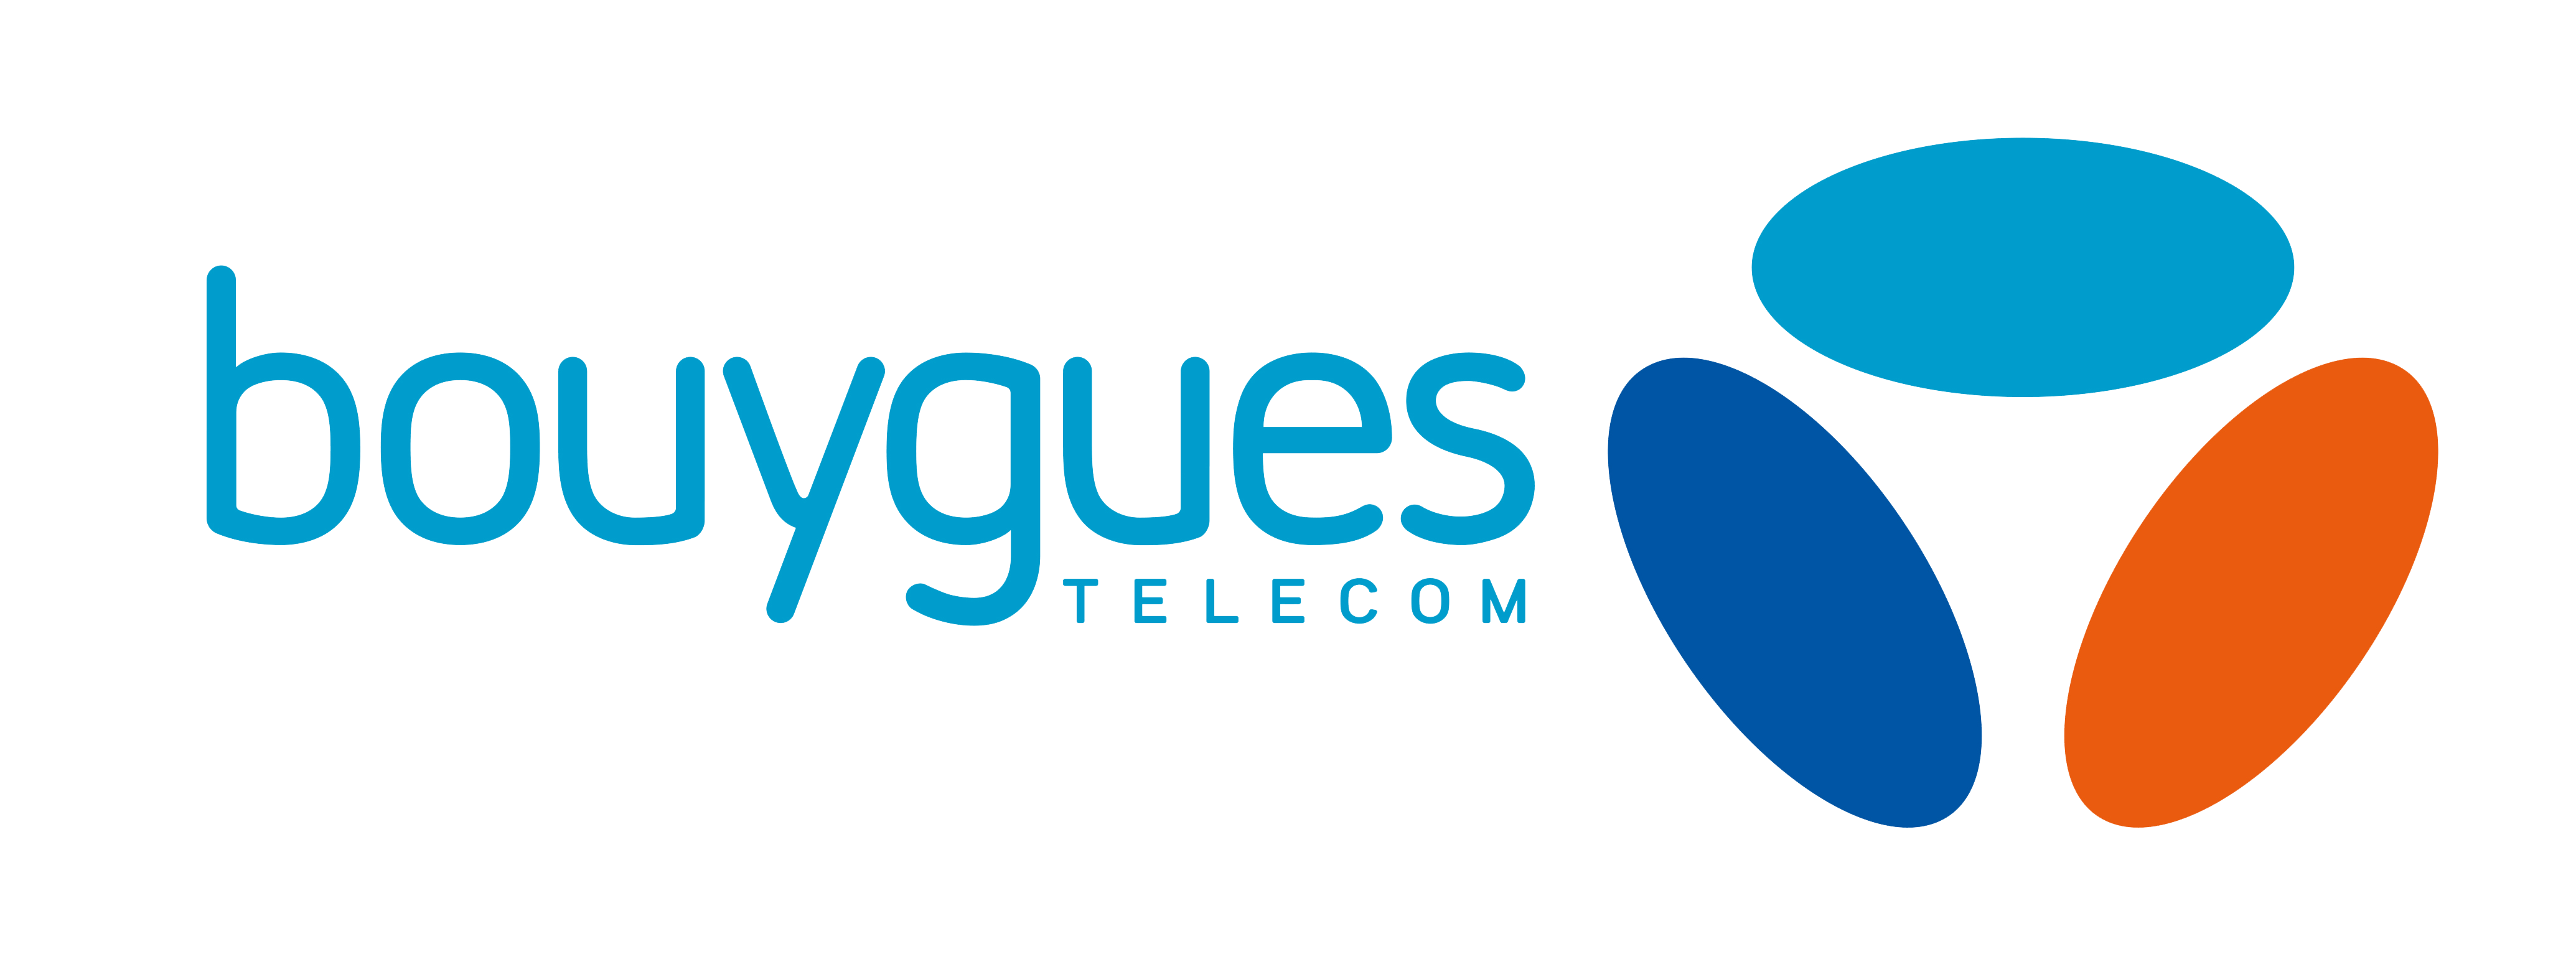 Bouygues_Telecom.png